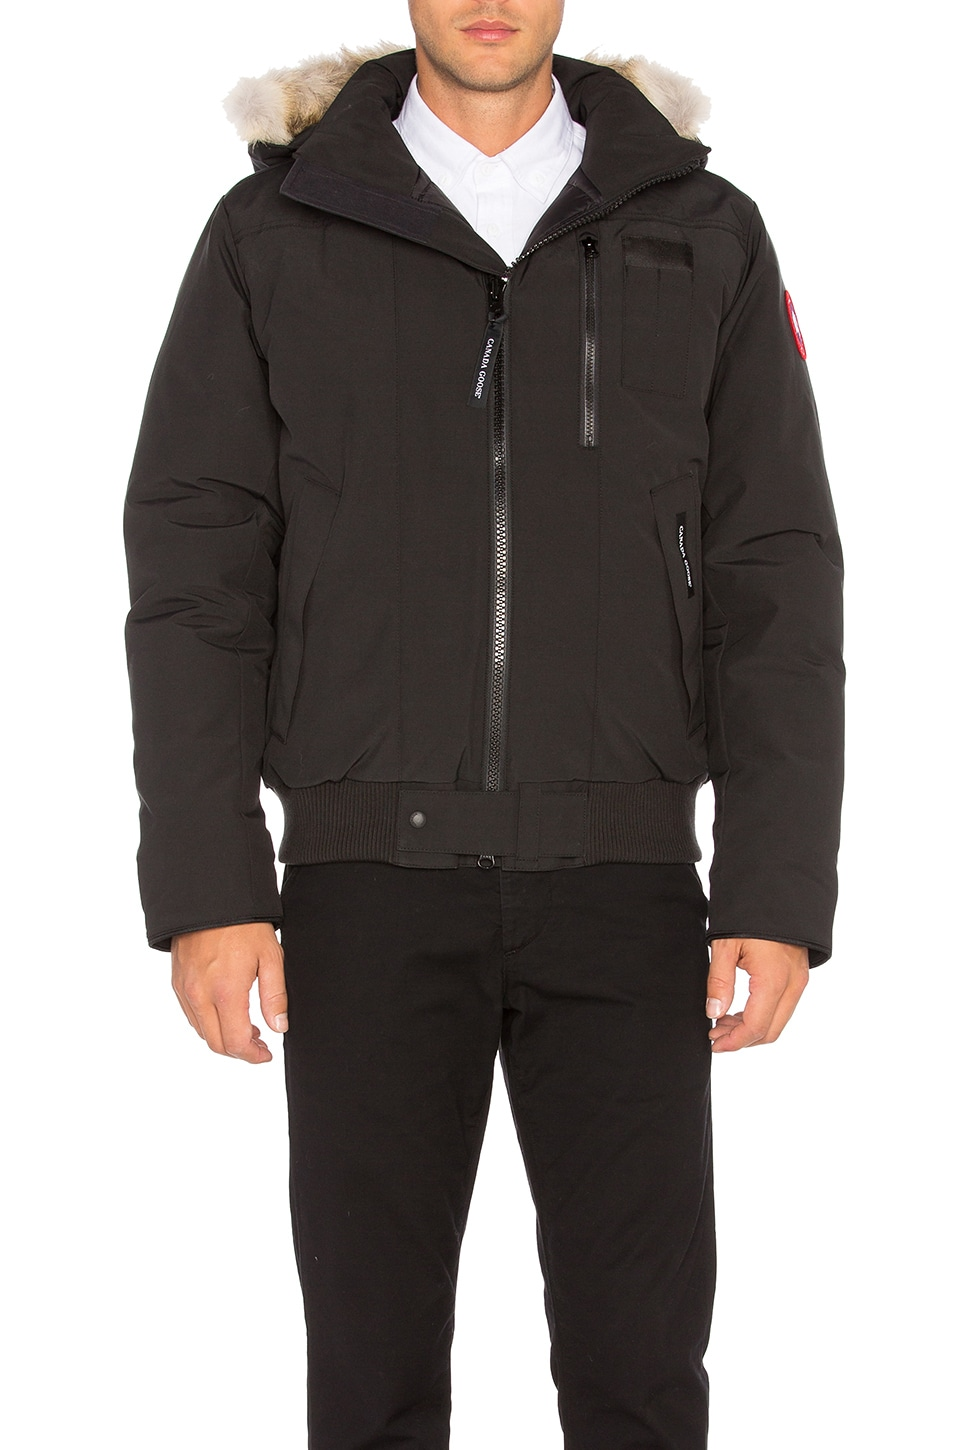 Borden Coyote Fur Trim Bomber by Canada Goose